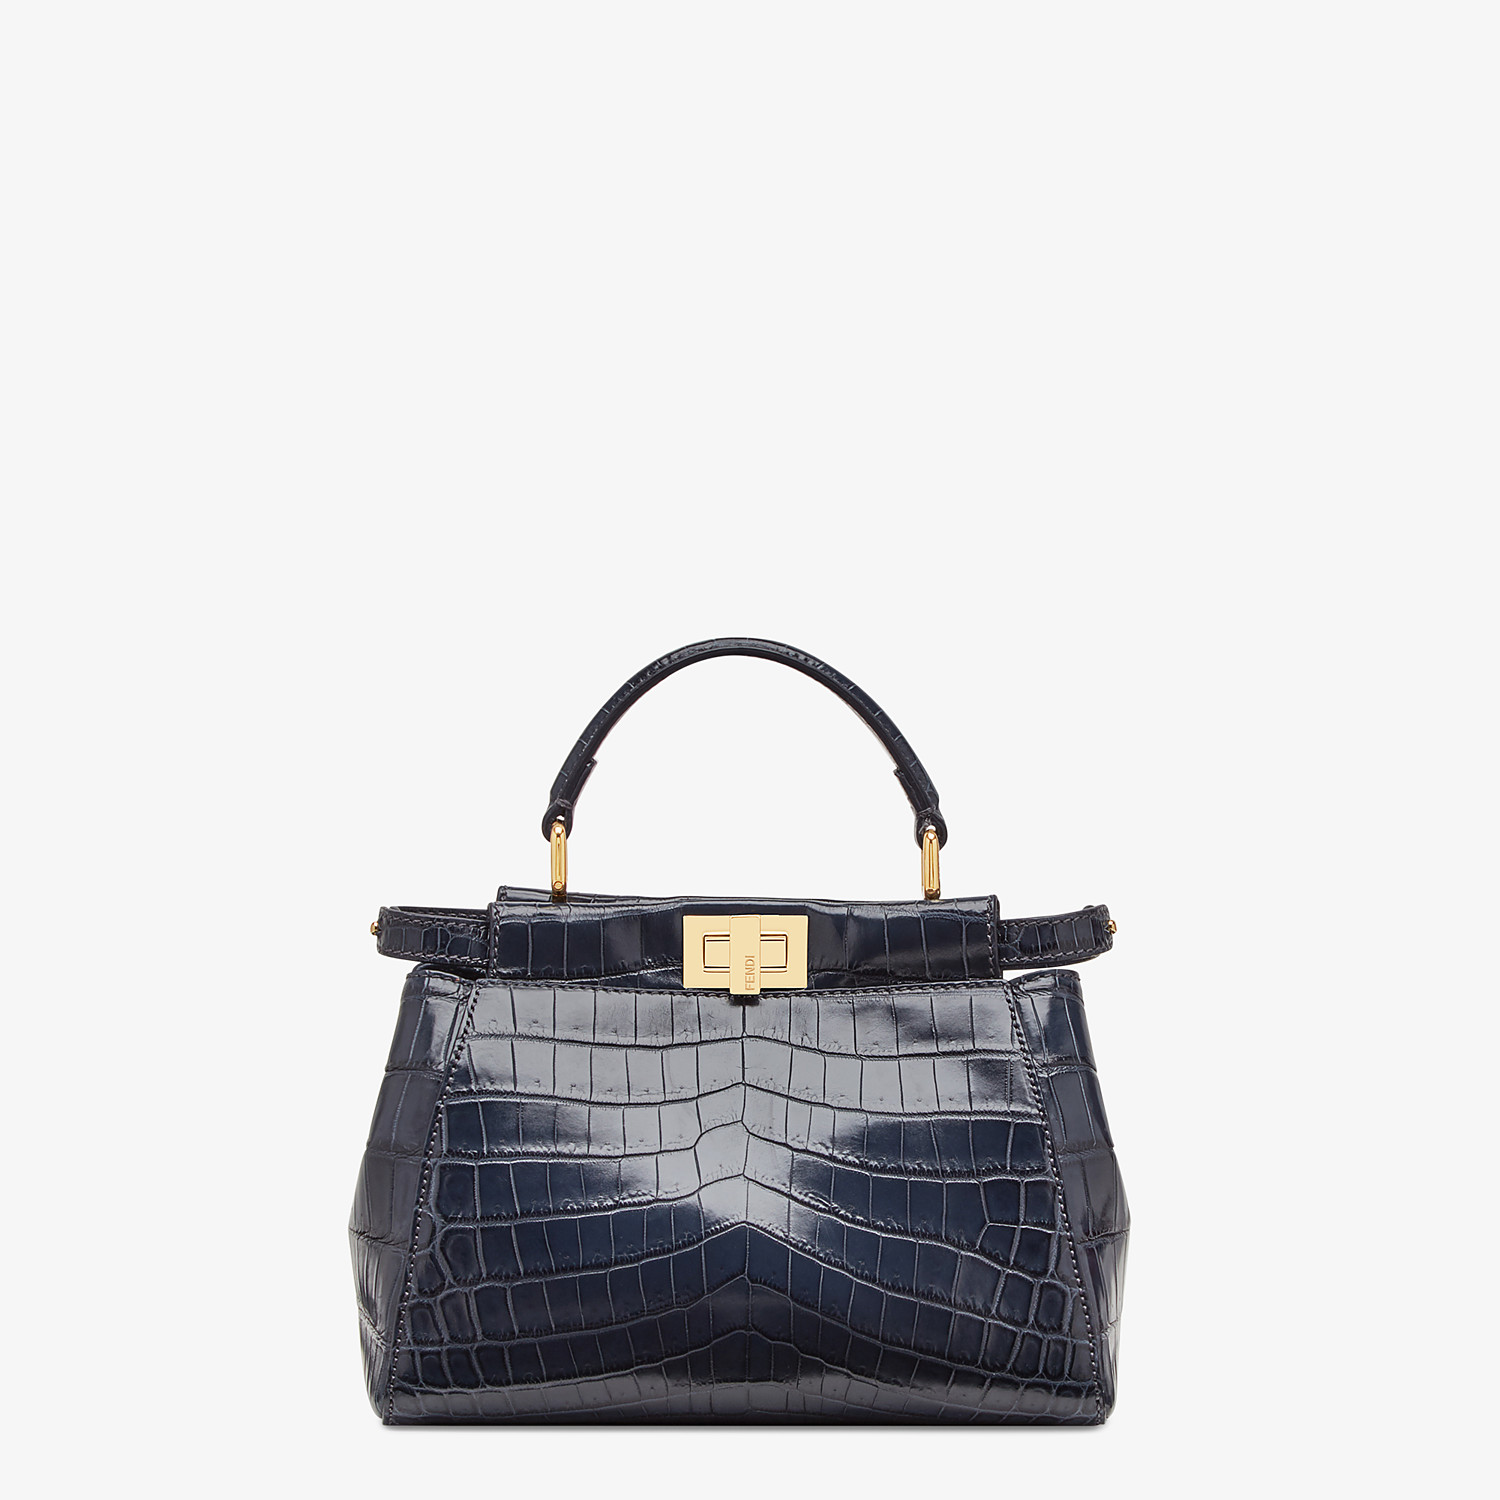 FENDI PEEKABOO MINI - Black crocodile bag - view 1 detail